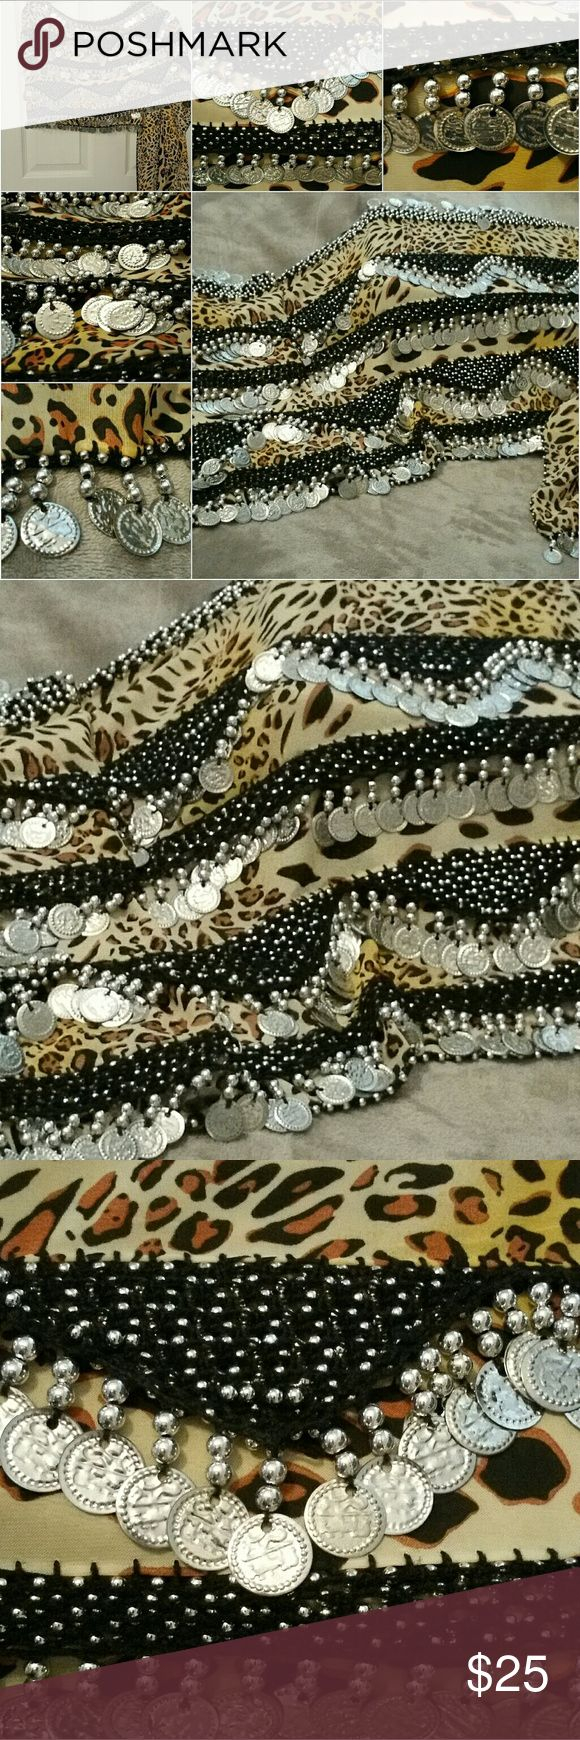 Belly dance hip scarf-Handmade At 6ft L & 1ft W this gorgeous animal print hip scarf is amazing; over 150 silver coins & beads adorn this piece purchased from an old Greek woman at a family owned restaurant while in FL on business; she creates each one herself as her grandmother & mother taught her, I was fascinated by her talent & her story; truly a unique work of art & FUN too! Accessories Scarves & Wraps